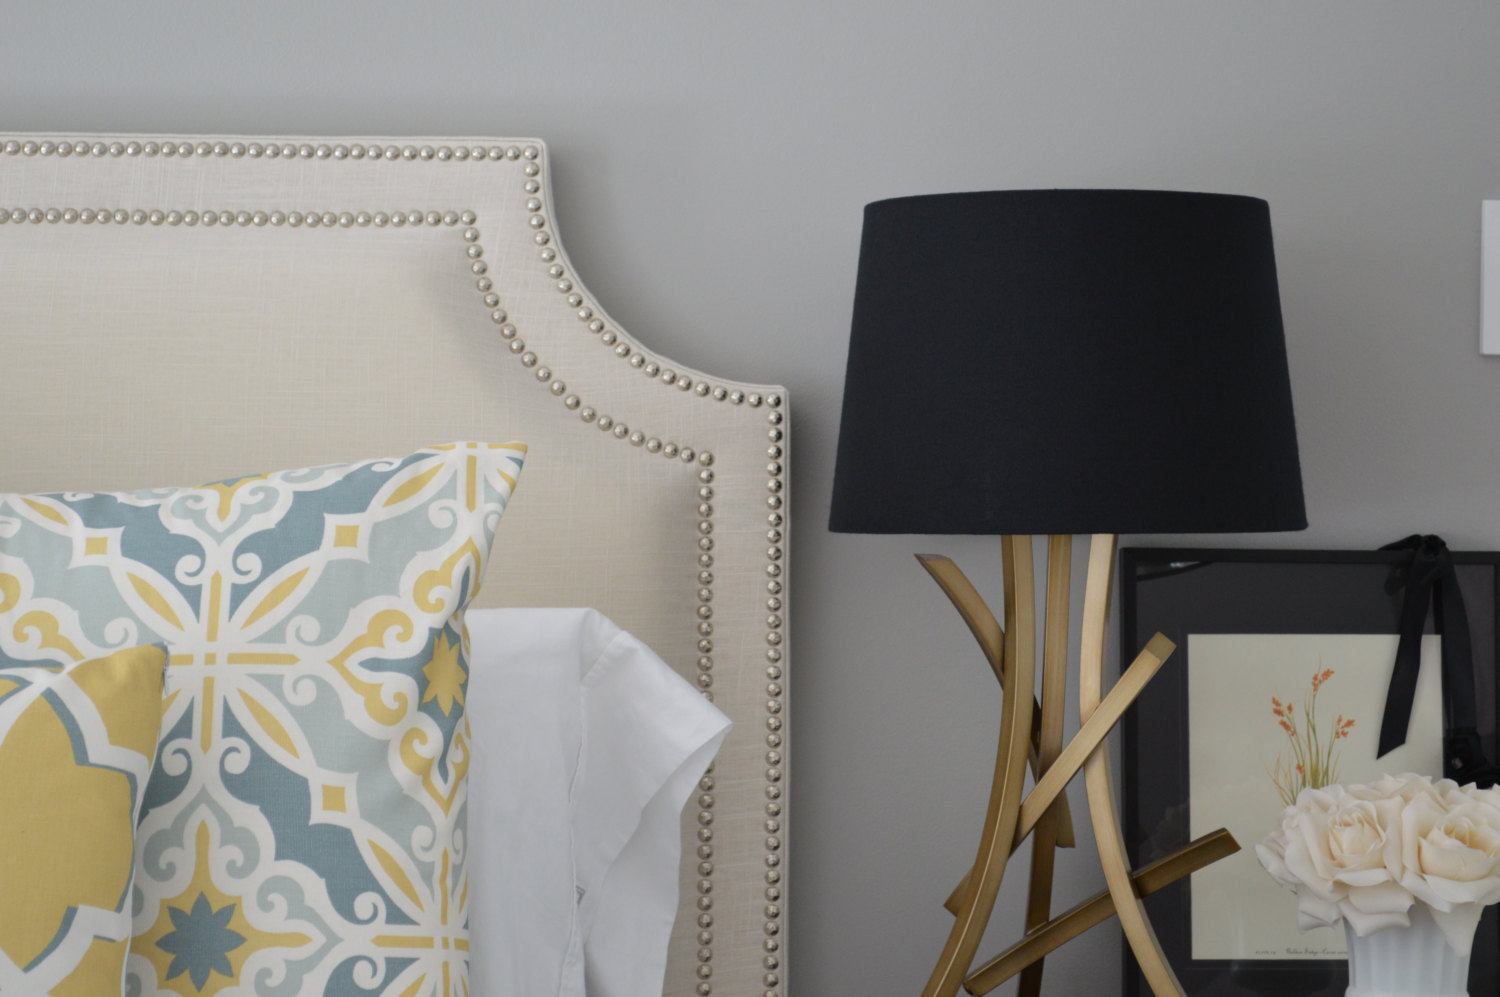 Upholstered Headboard with Nailhead Trim – A Simple Way to Adorn Your Headboard